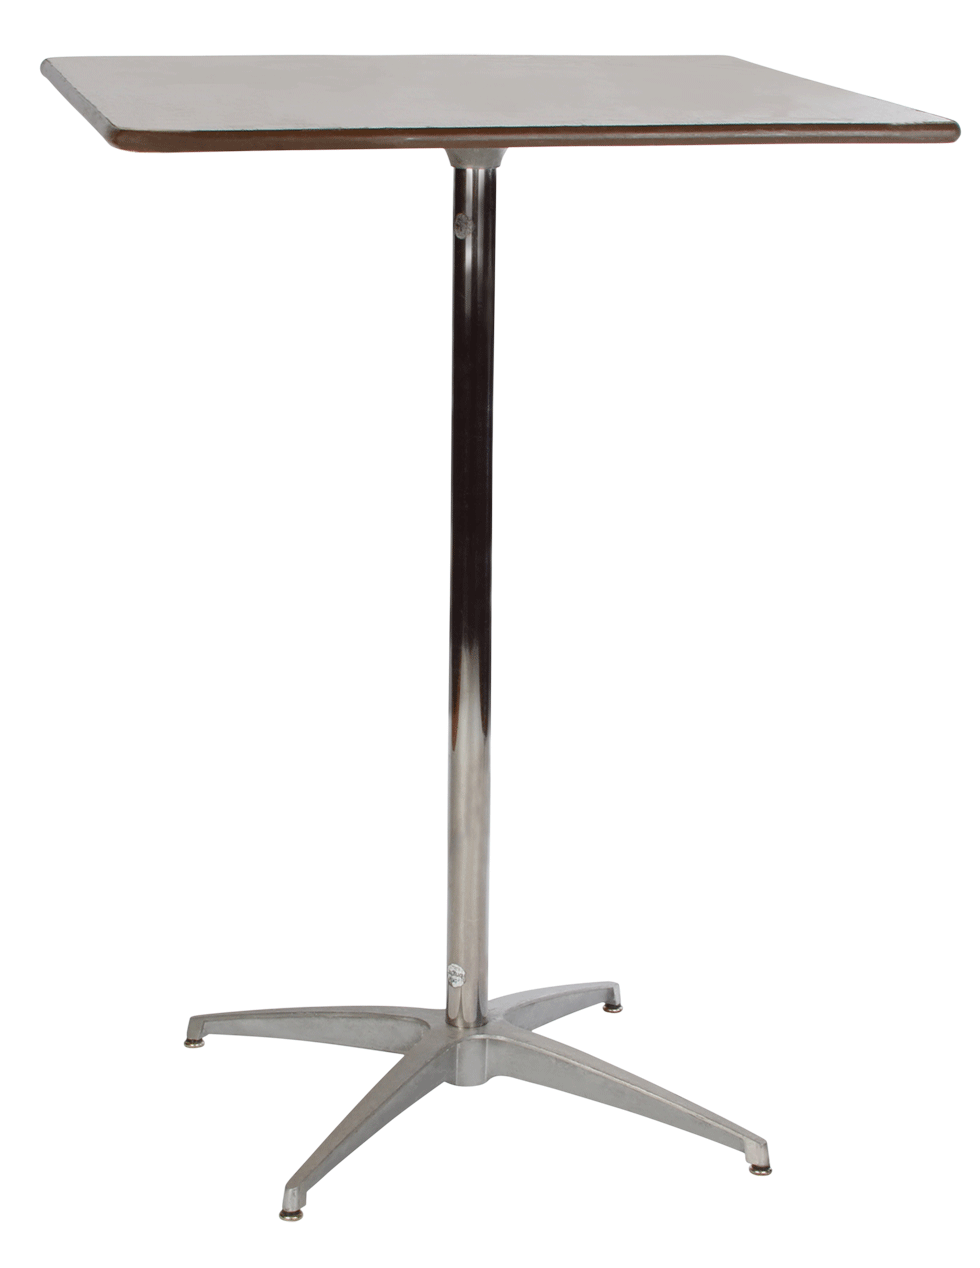 Tall Cocktail Table 30 Quot Square X 42 Quot High Rentals Bright